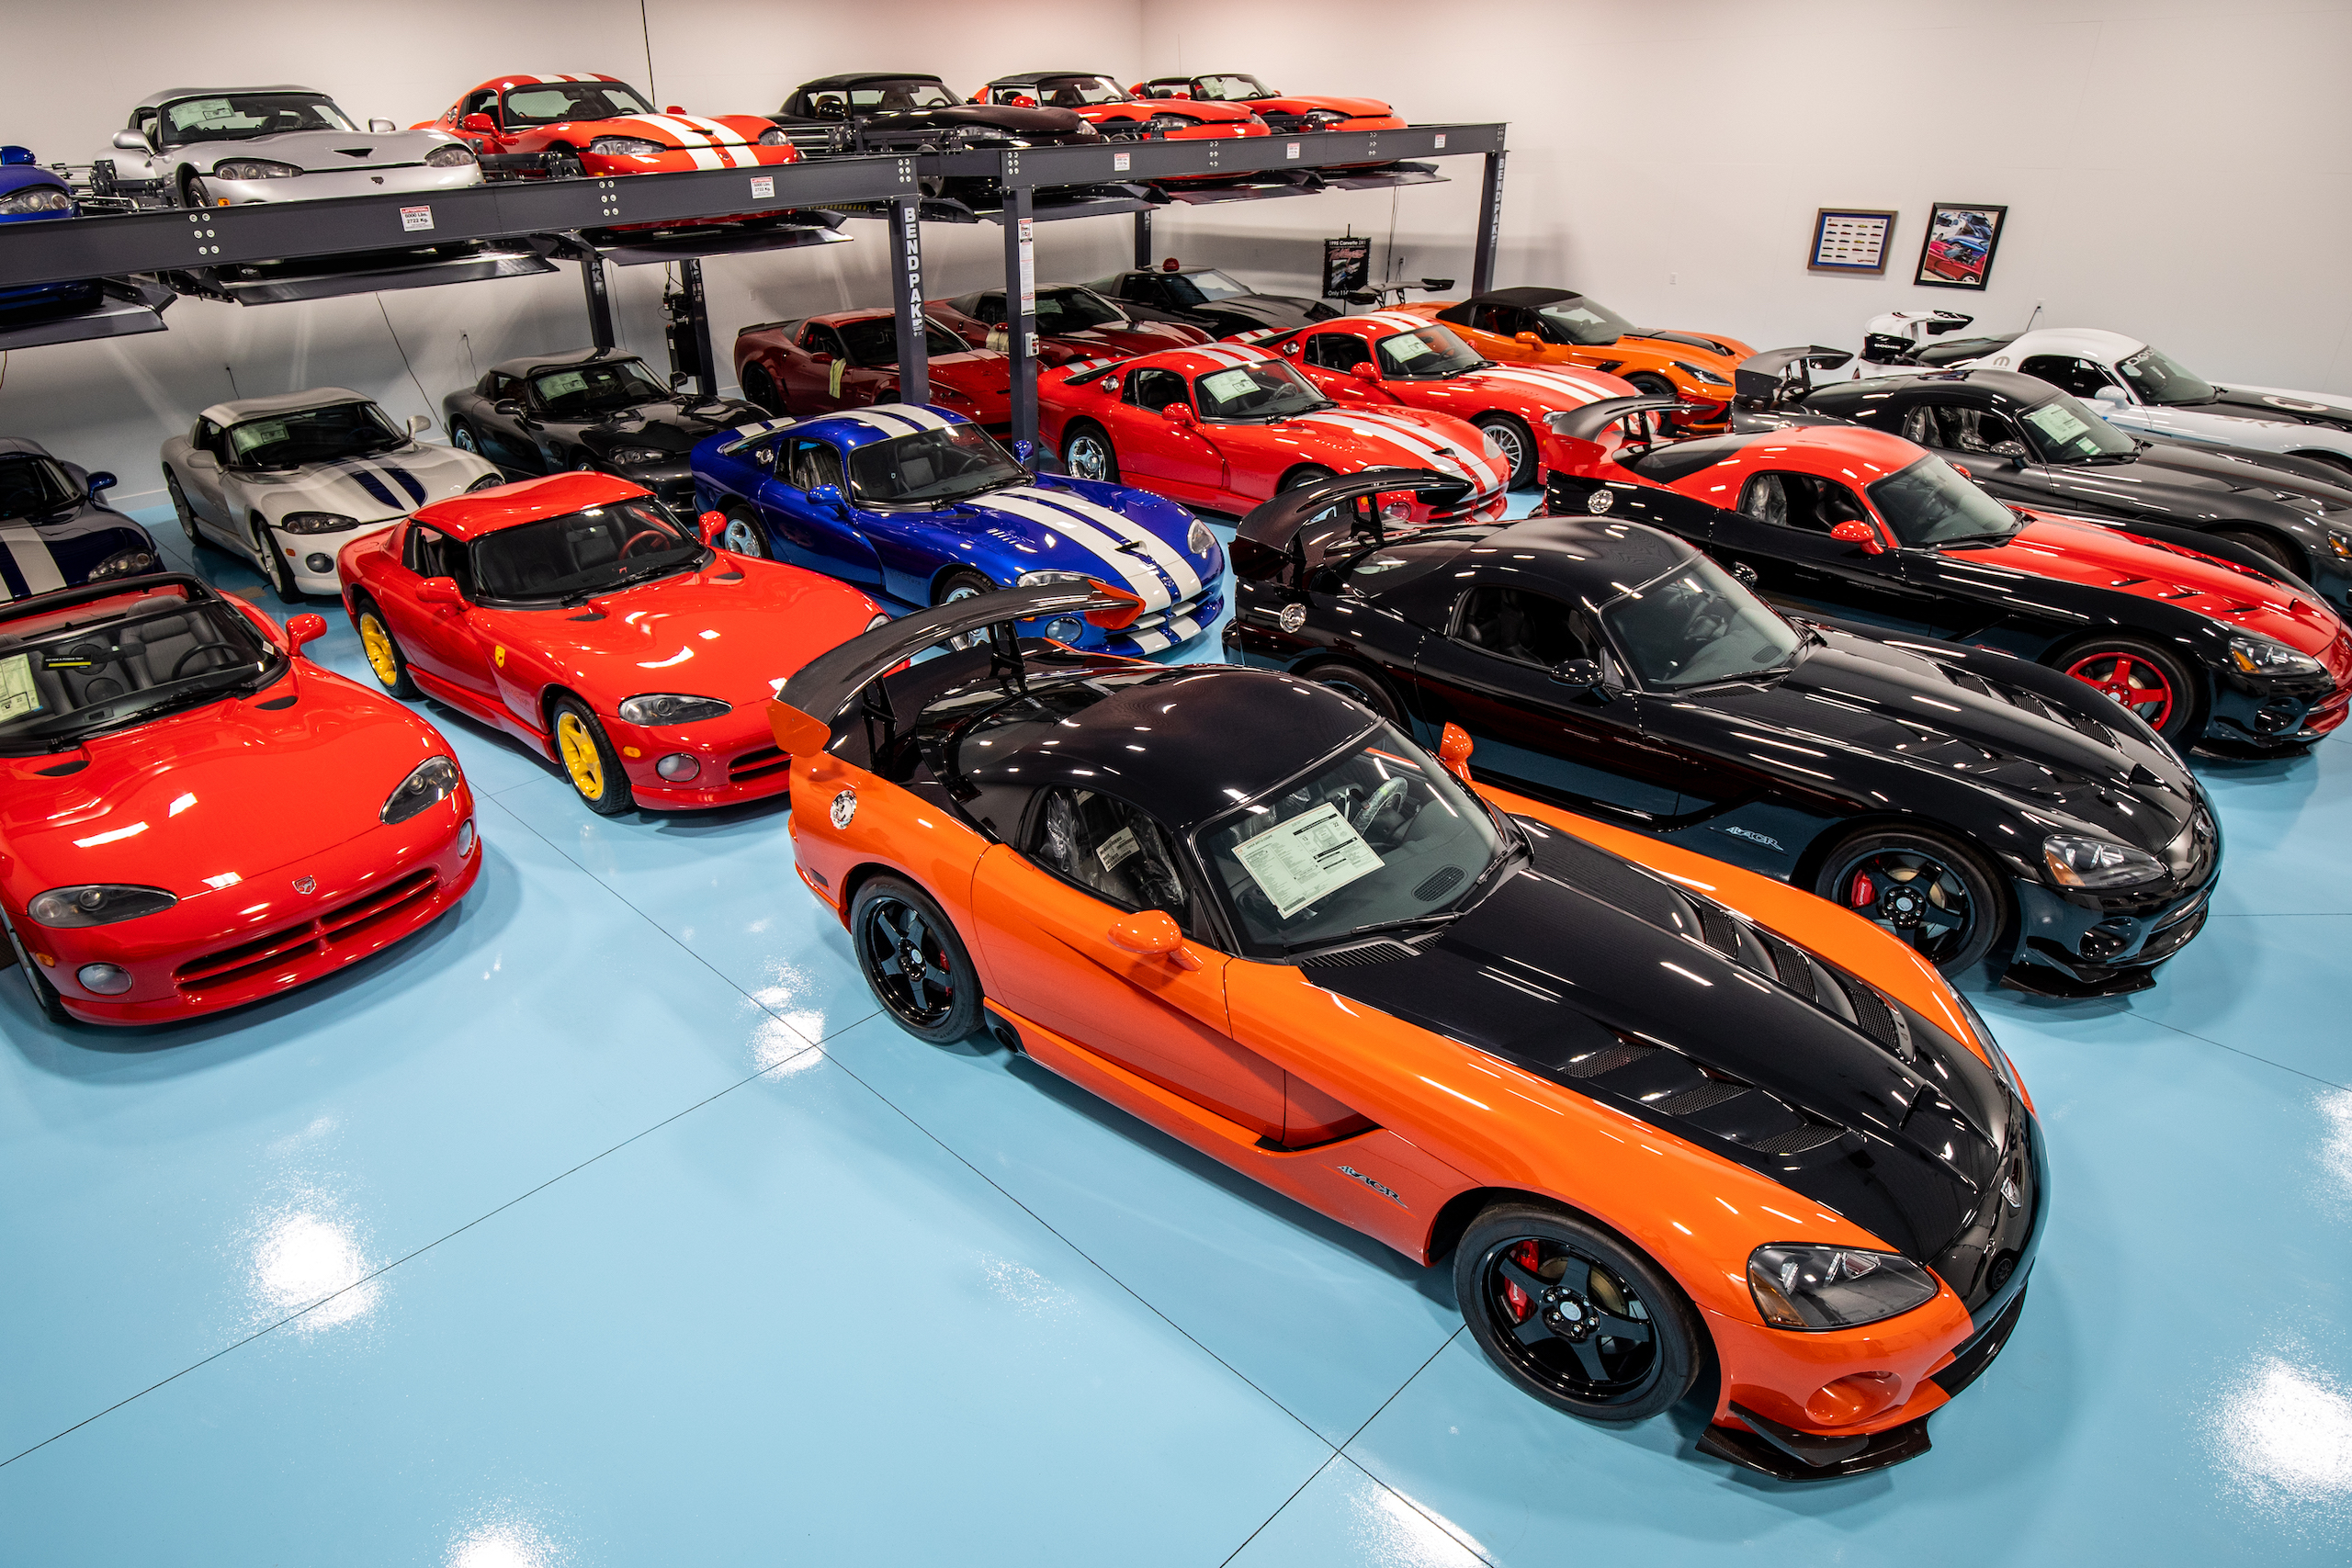 Viper collection wide